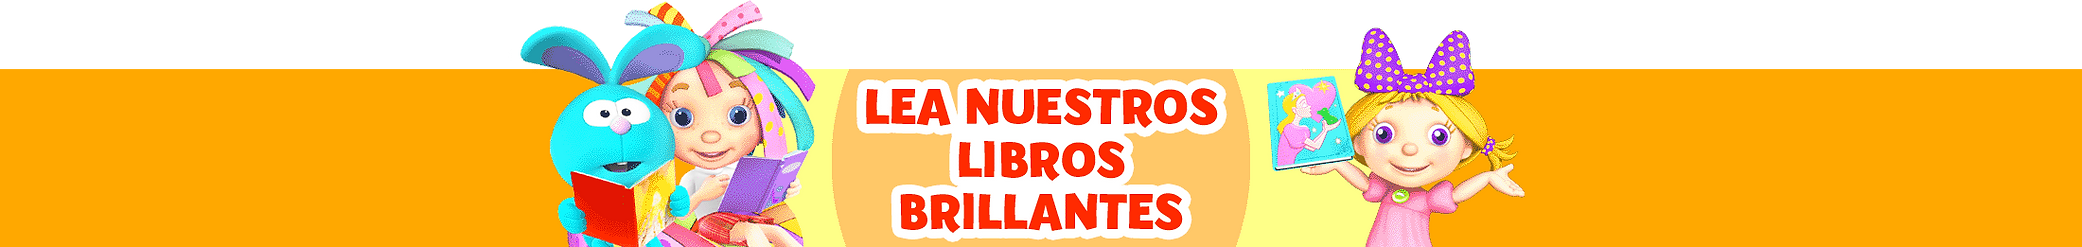 spanish - read-our-brilliant-books-banne